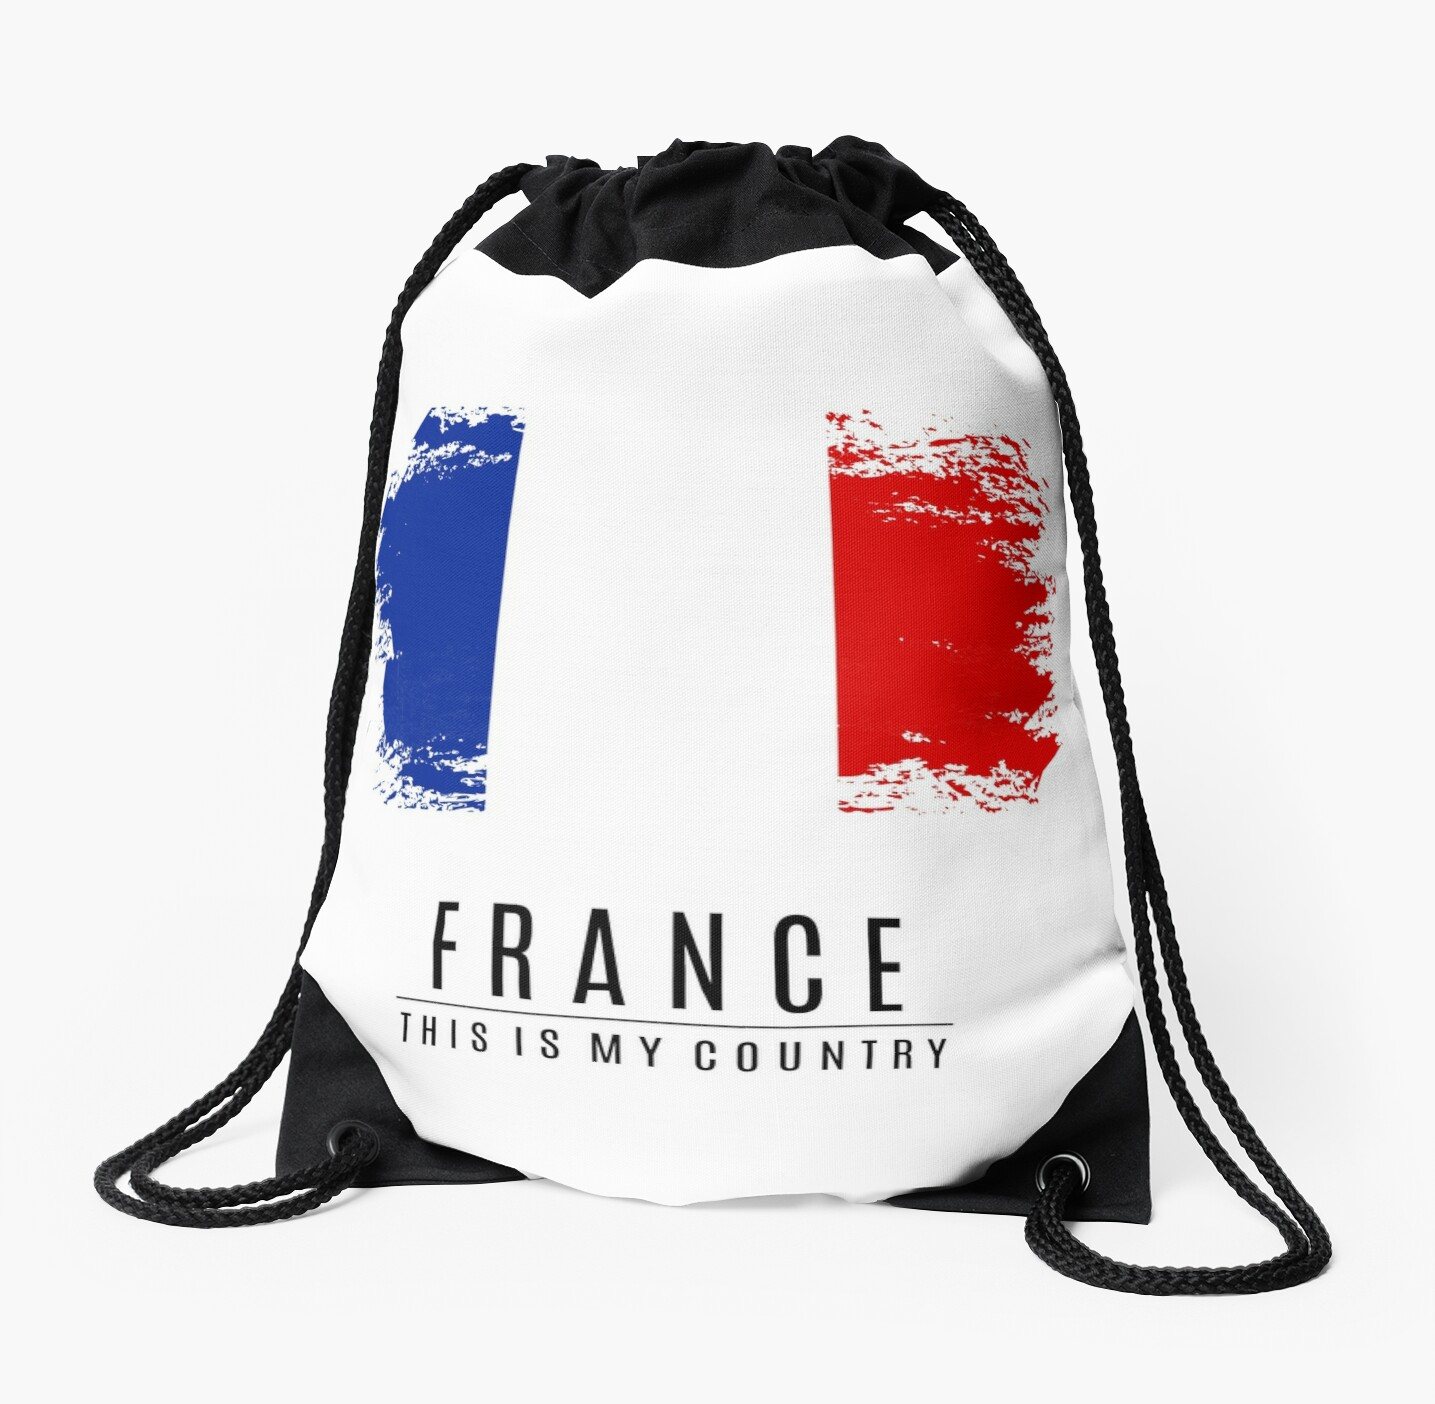 Quot France Quot Drawstring Bags By Capp6 Redbubble